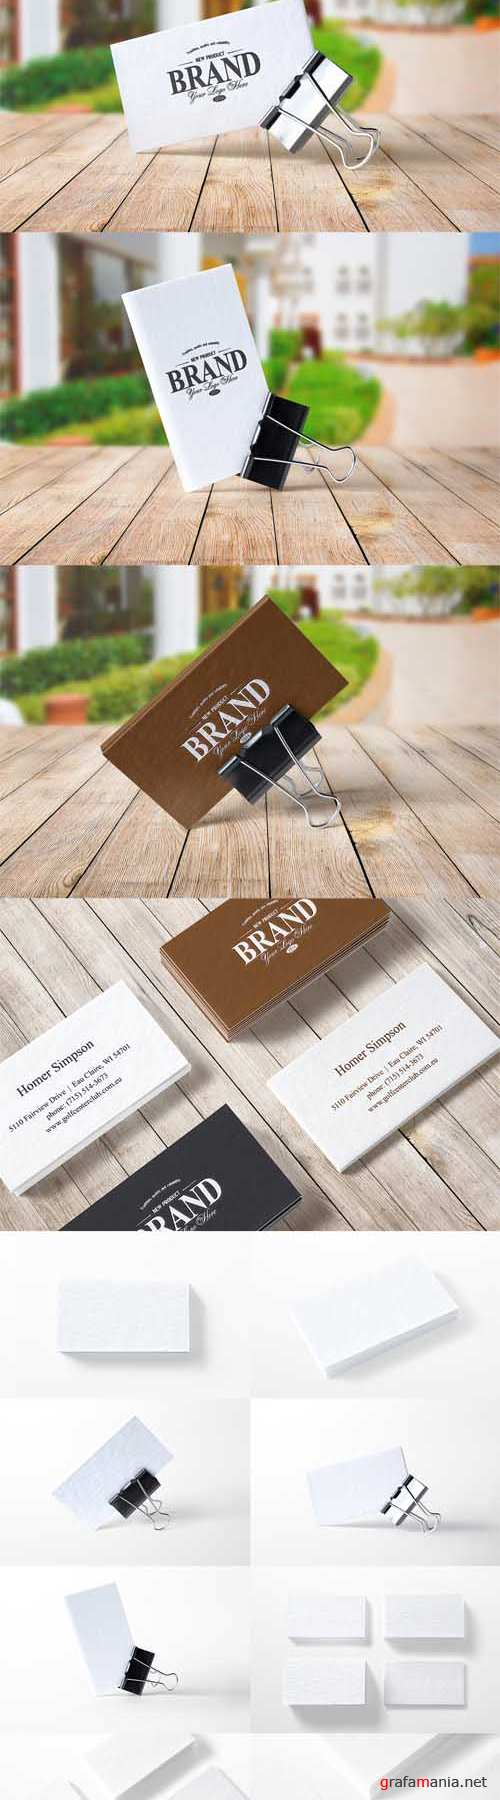 PSD - 8 Realistic Business Card Mockups